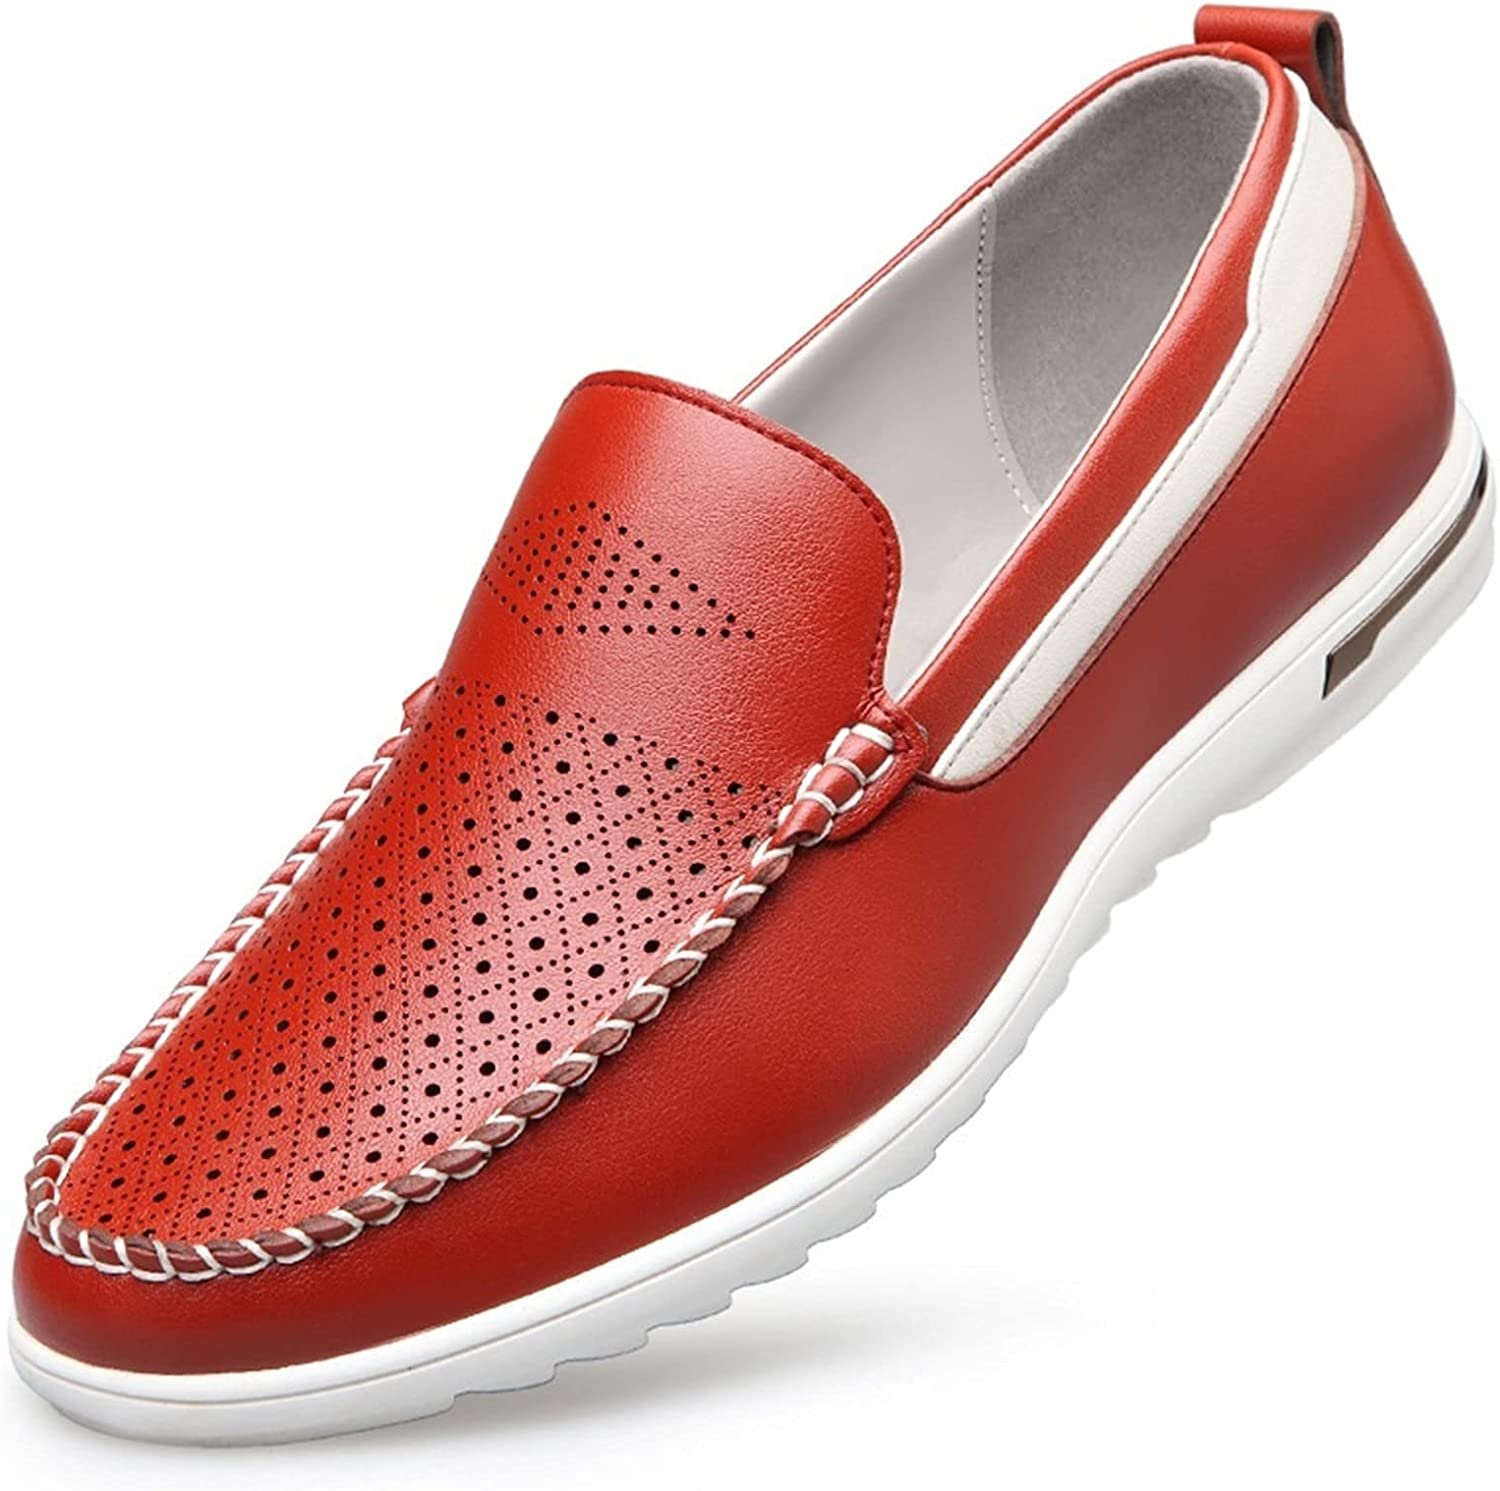 Battle Men Men's Casual Loafer Vegan Leather Slip on Moc Toe Perforated Shoes Anti Skid Pull Tap Lightweight Arch Supports Loafers Casual